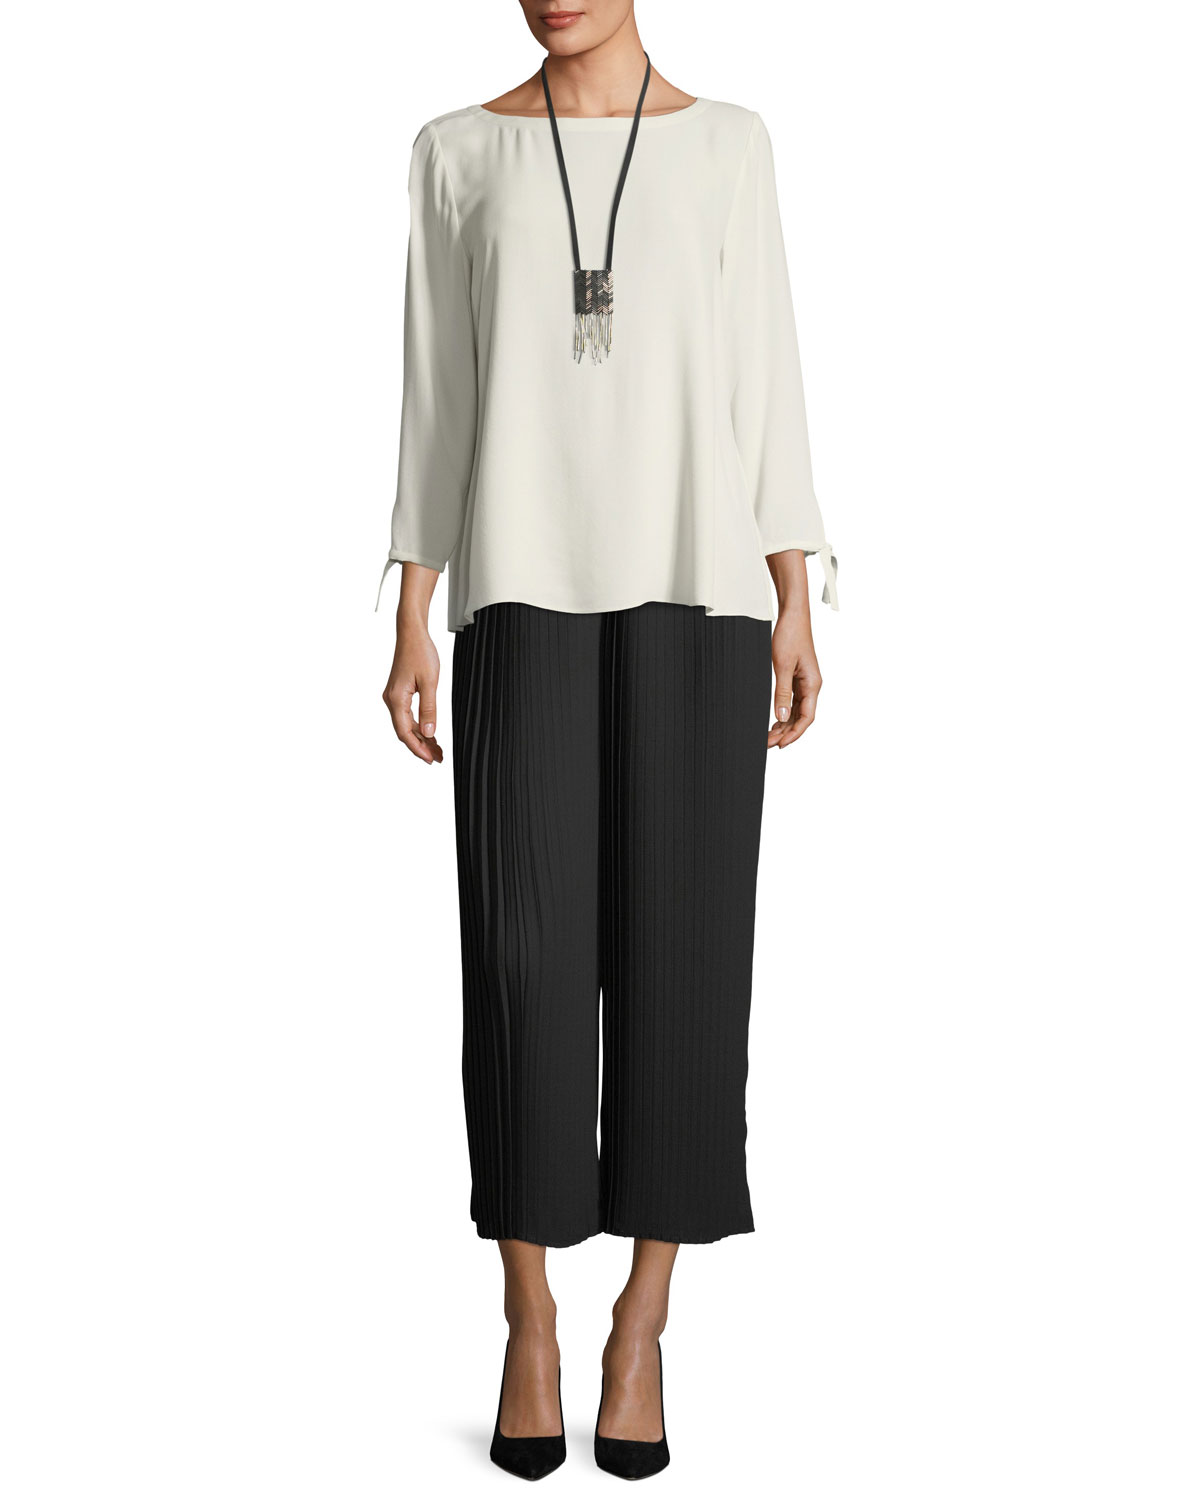 Knife-Pleated Wide-Leg Ankle Pants, Plus Size